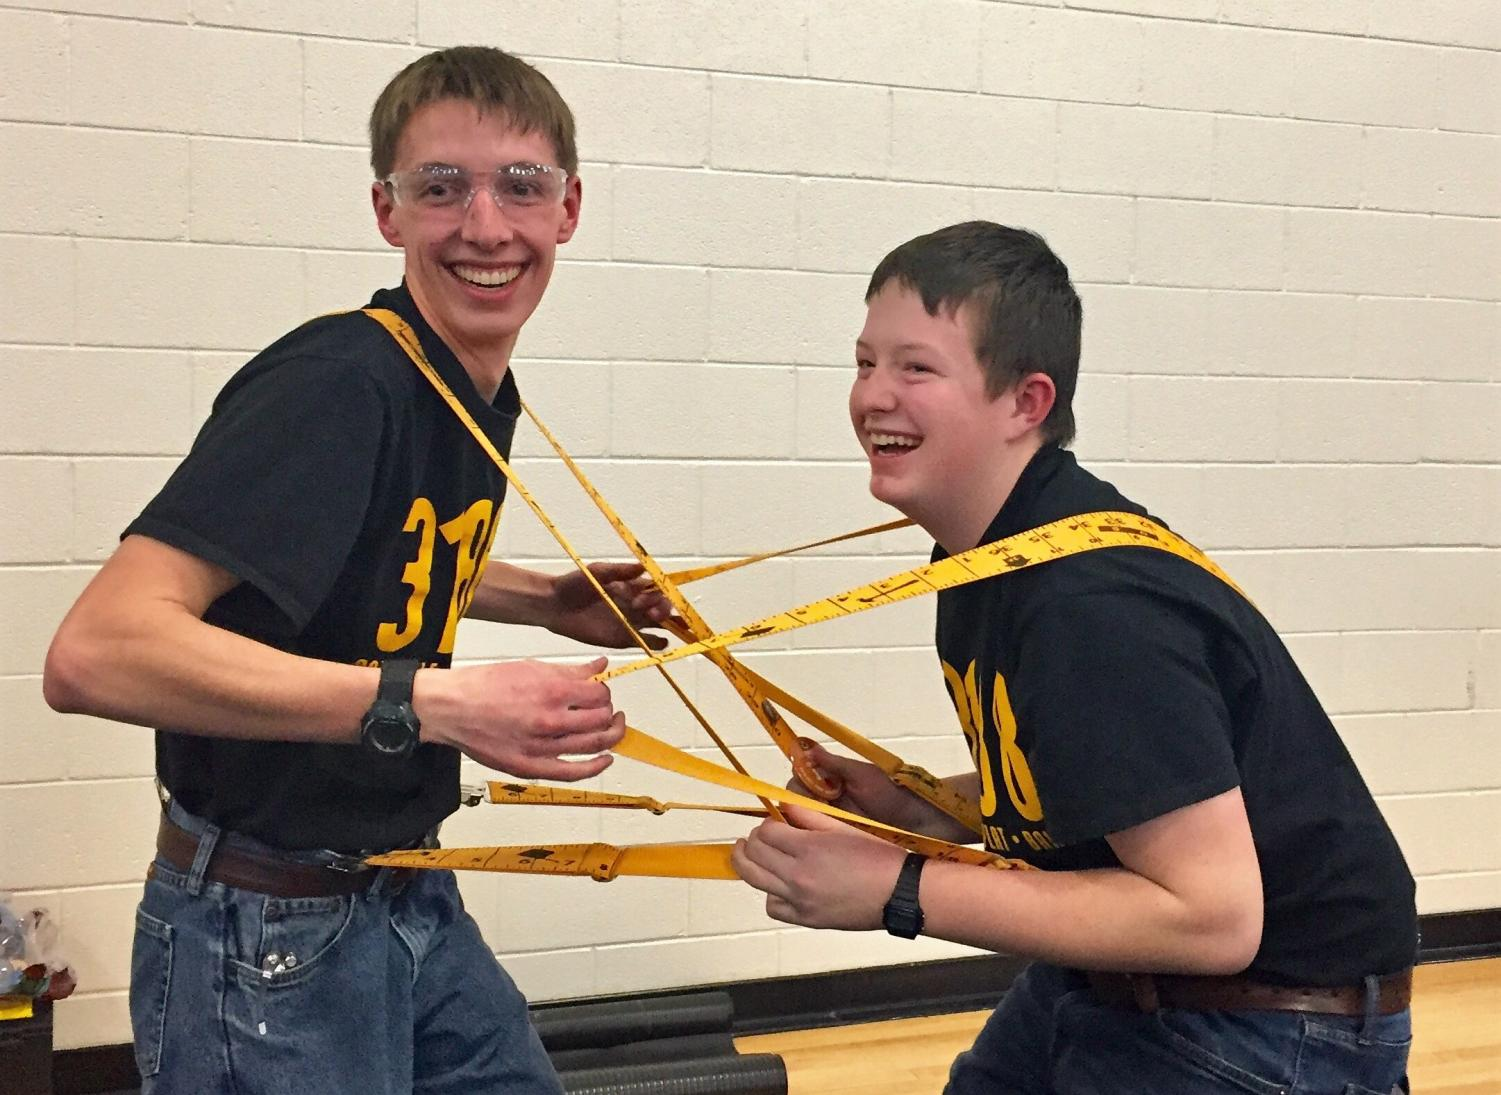 Alan Merritt (left) and Caden Sherman prepare to snap each others suspenders during the state competition in Casper.